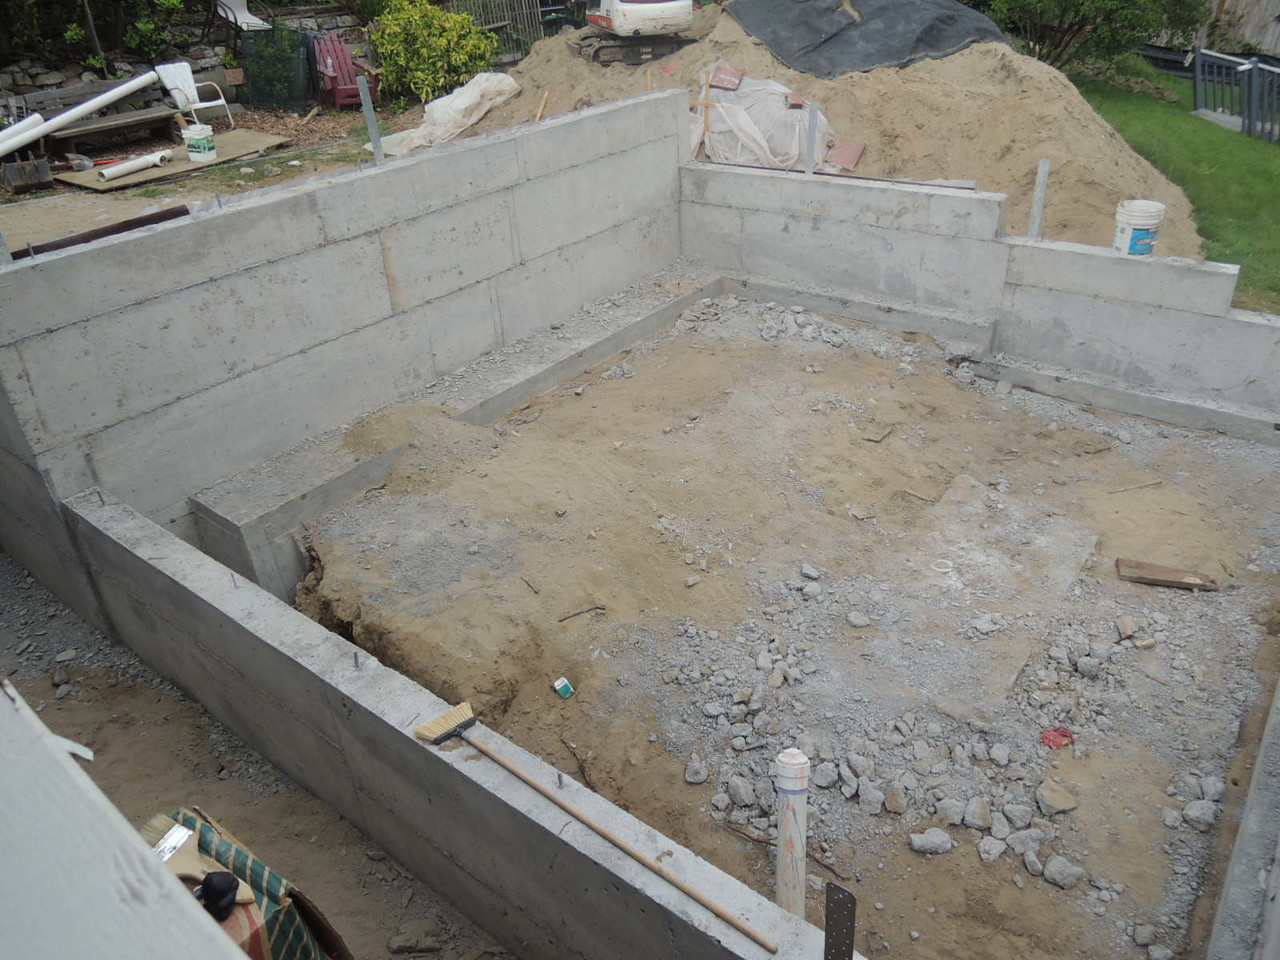 Forms off, concrete hard and continuing to cure.